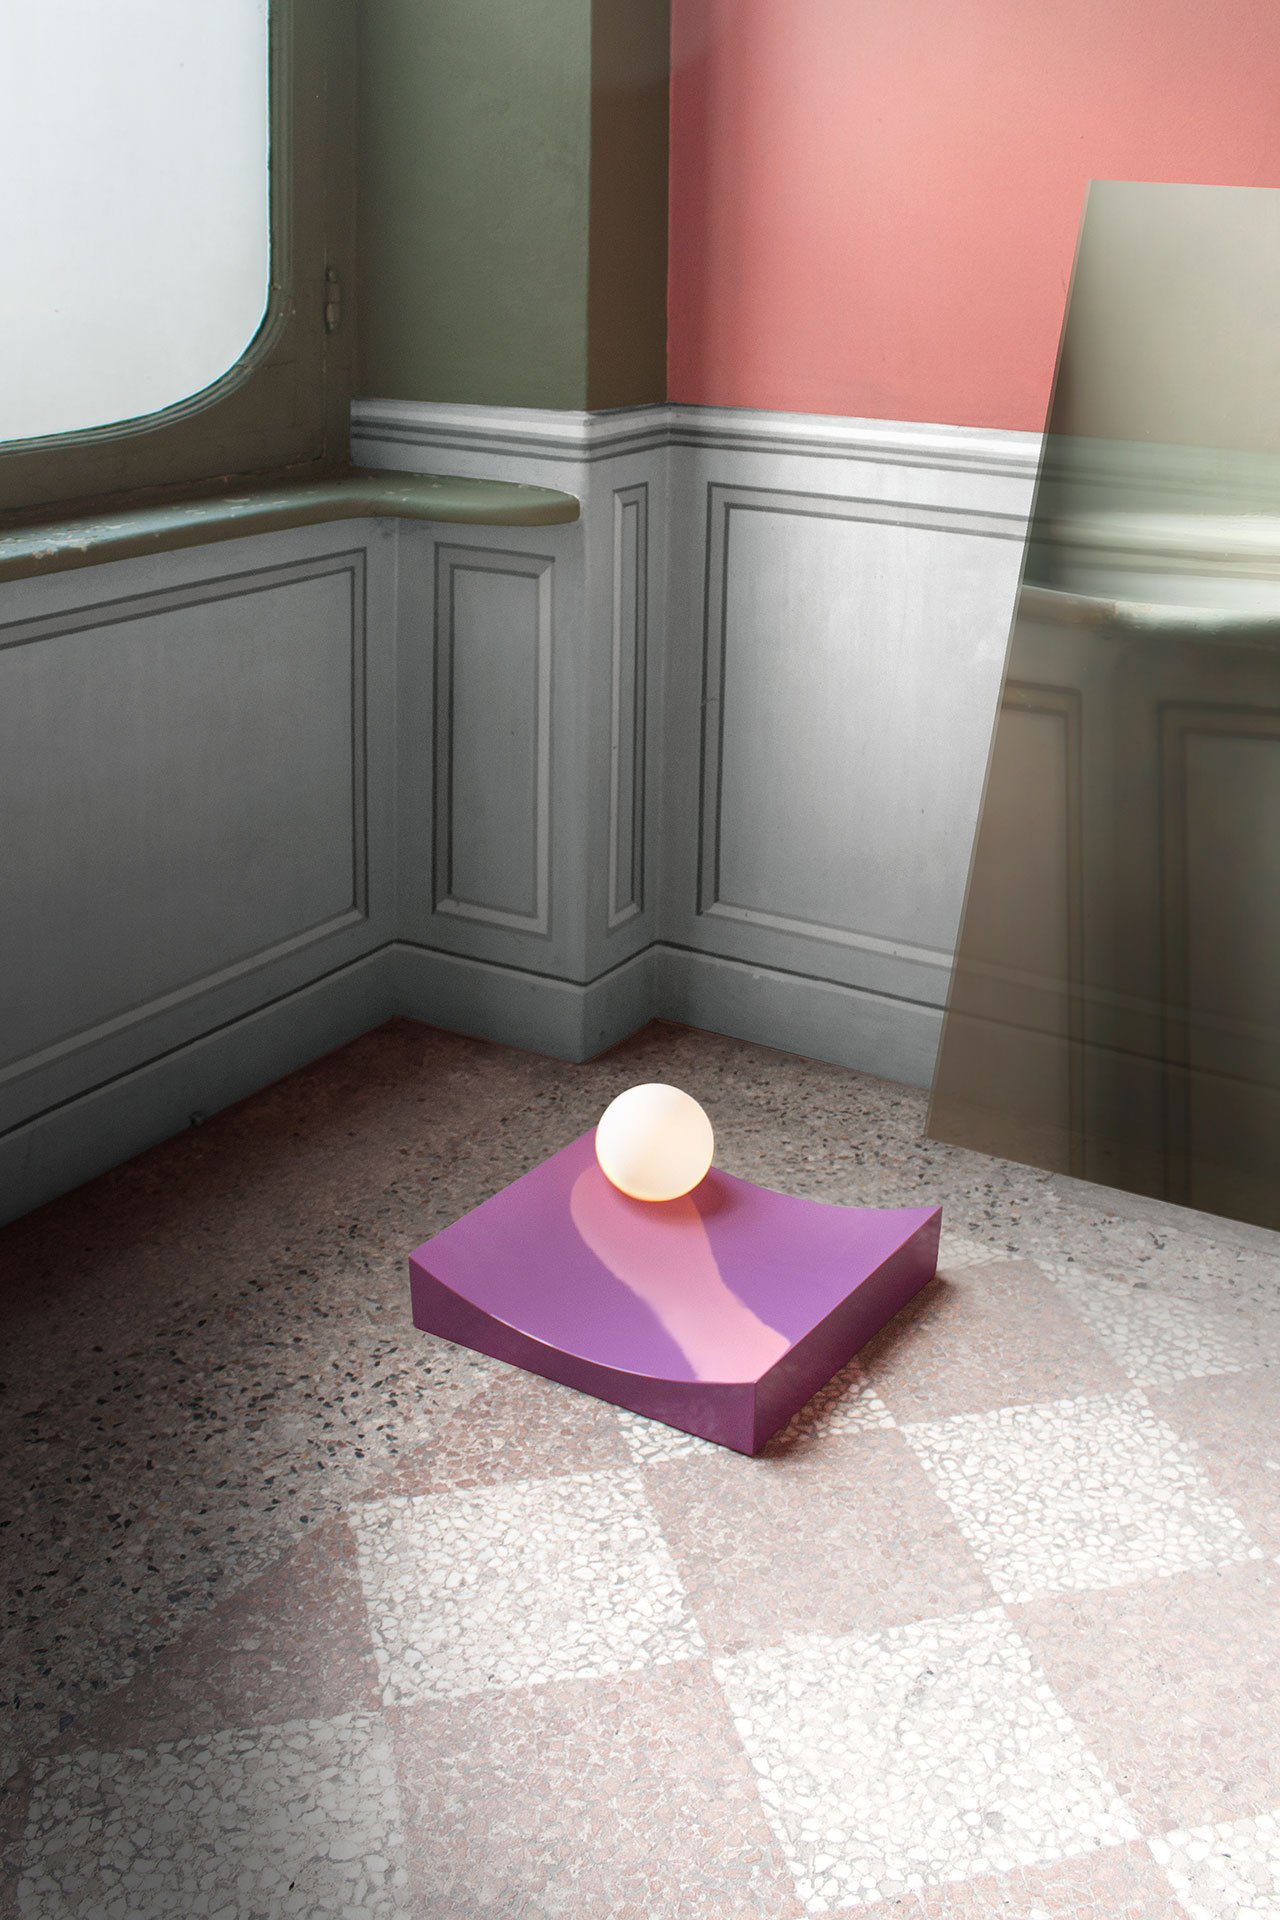 In the Shadow of a Mancollection of sculptural lighting objects by London-basedChild Studio(Alexey Kostikov and Chieh Huang).Photo© Child Studio.